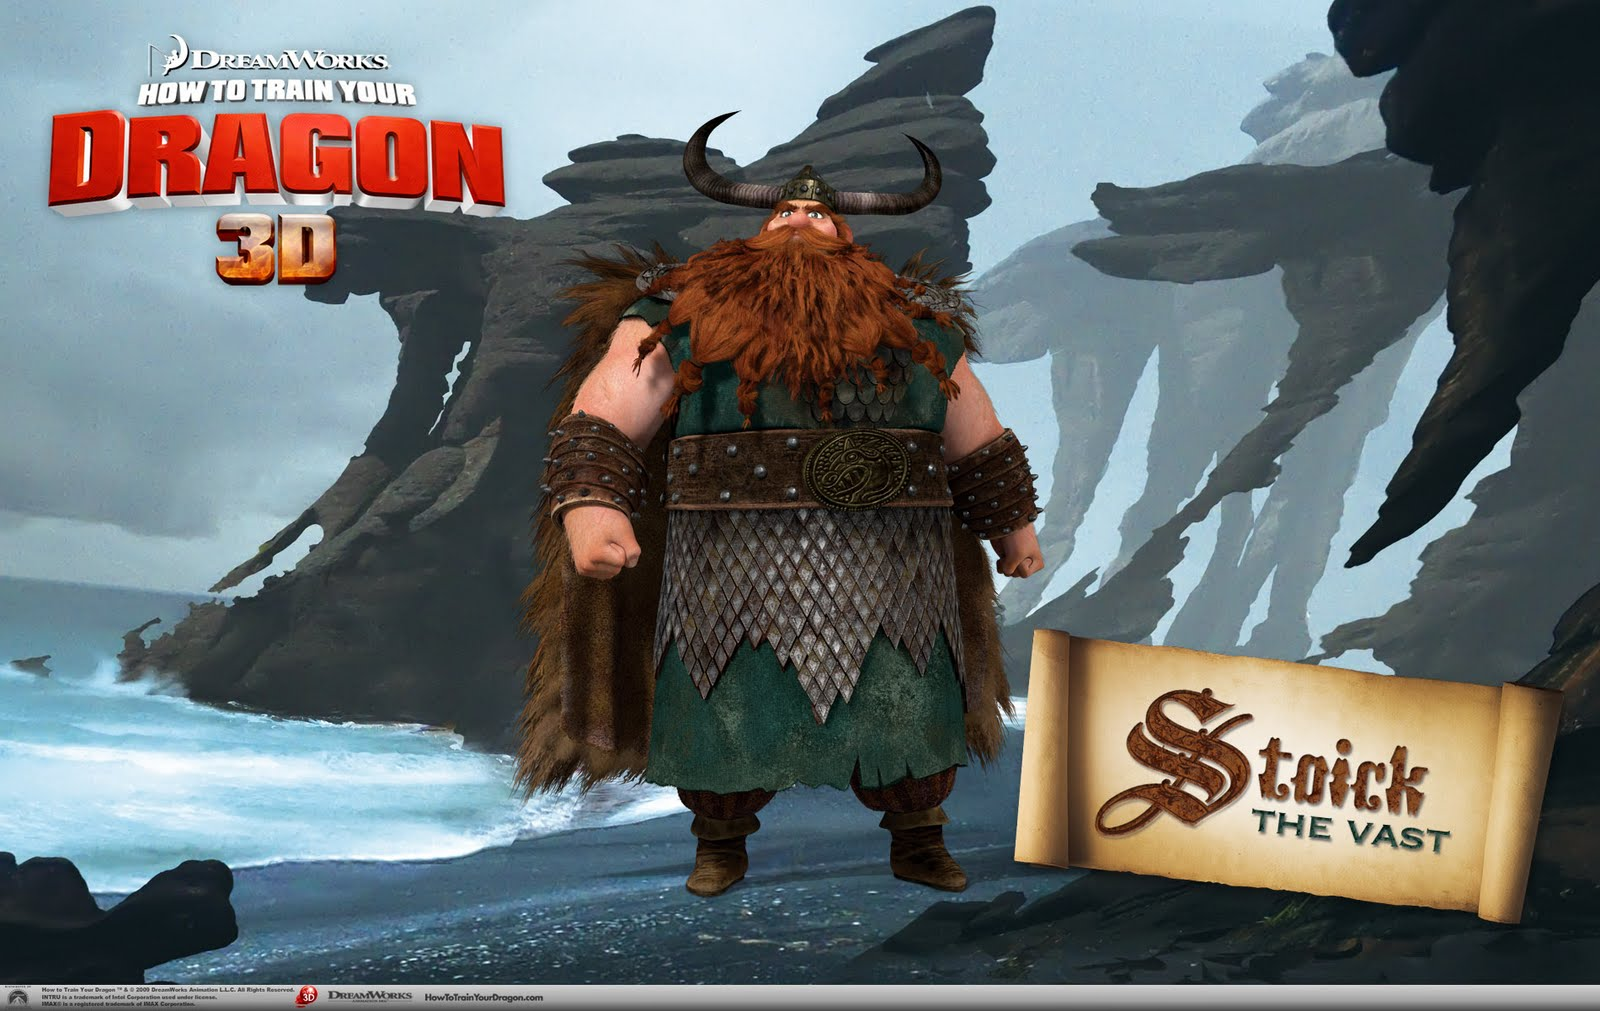 http://4.bp.blogspot.com/_r7NBJQJauD8/S8UZ9yeF0GI/AAAAAAAAAqo/ygxyfOAegcU/s1600/Gerard_Butler_in_How_to_Train_Your_Dragon_Wallpaper_17_1280.jpg